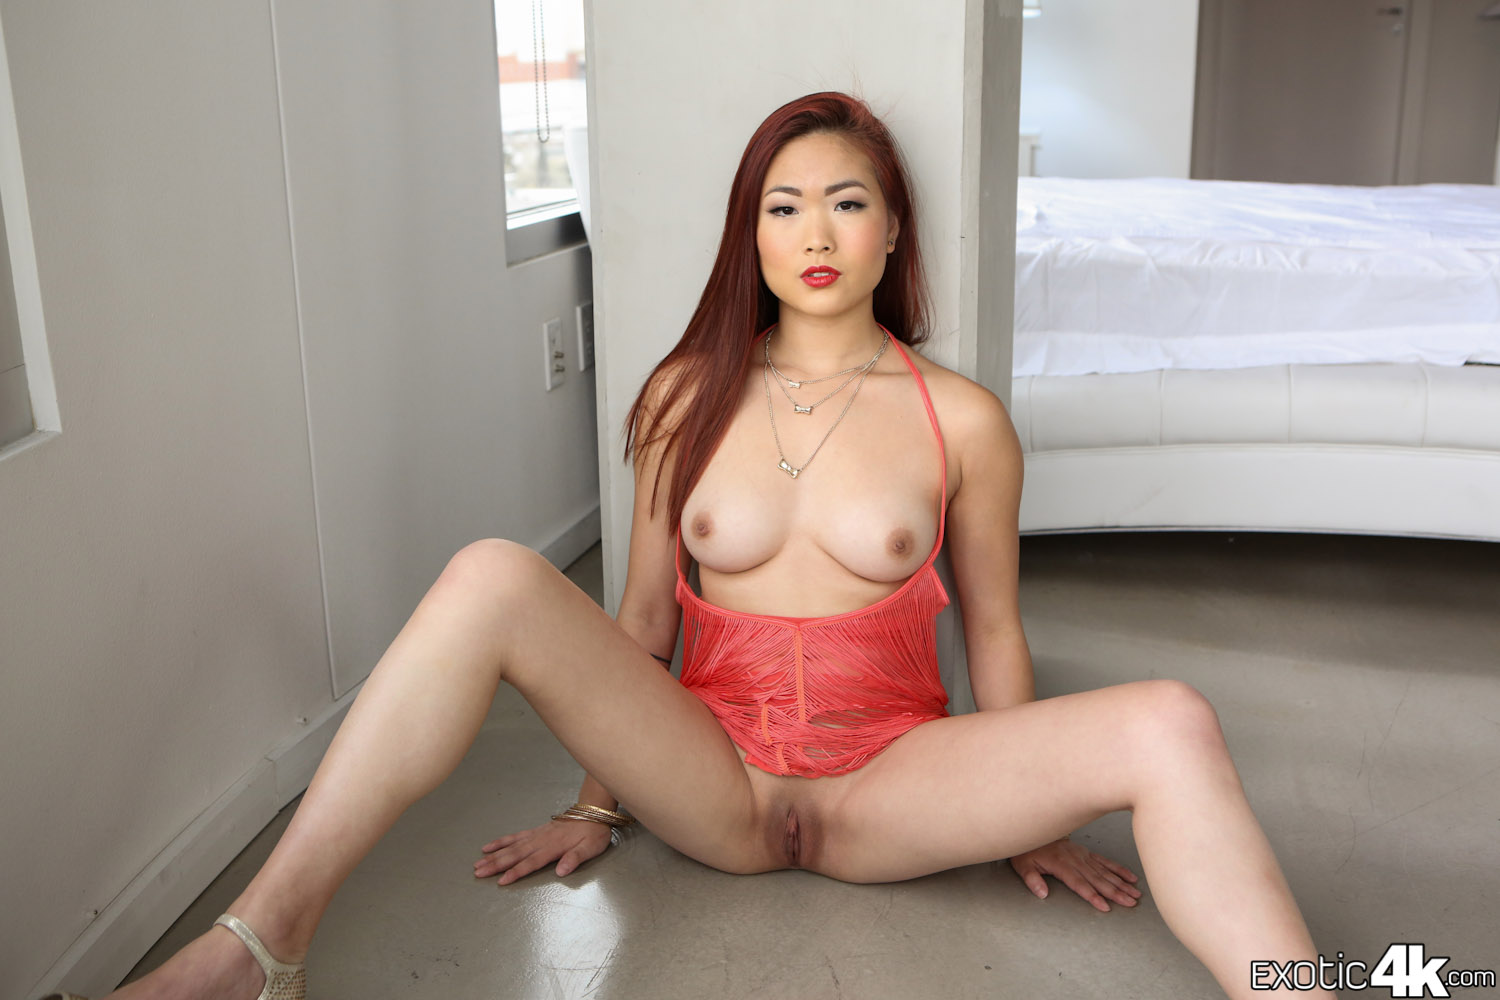 4k exotic4k selena santana bounces her ass on a hard cock - 3 part 6